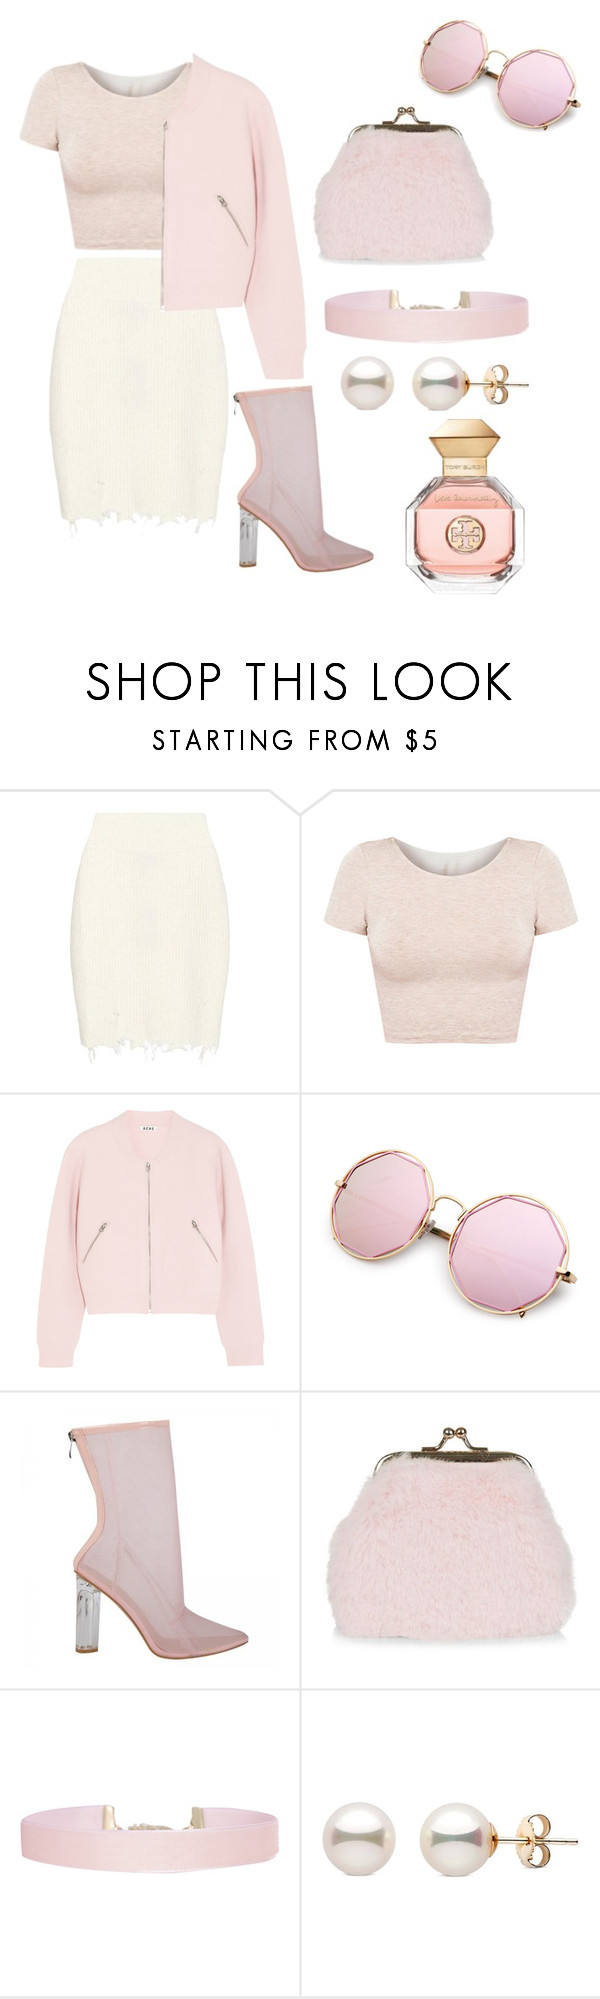 """""""Ms lady"""" by walkeralexzandreia ❤ liked on Polyvore featuring adidas Originals, American Apparel, Acne Studios, New Look, Humble Chic and Tory Burch"""